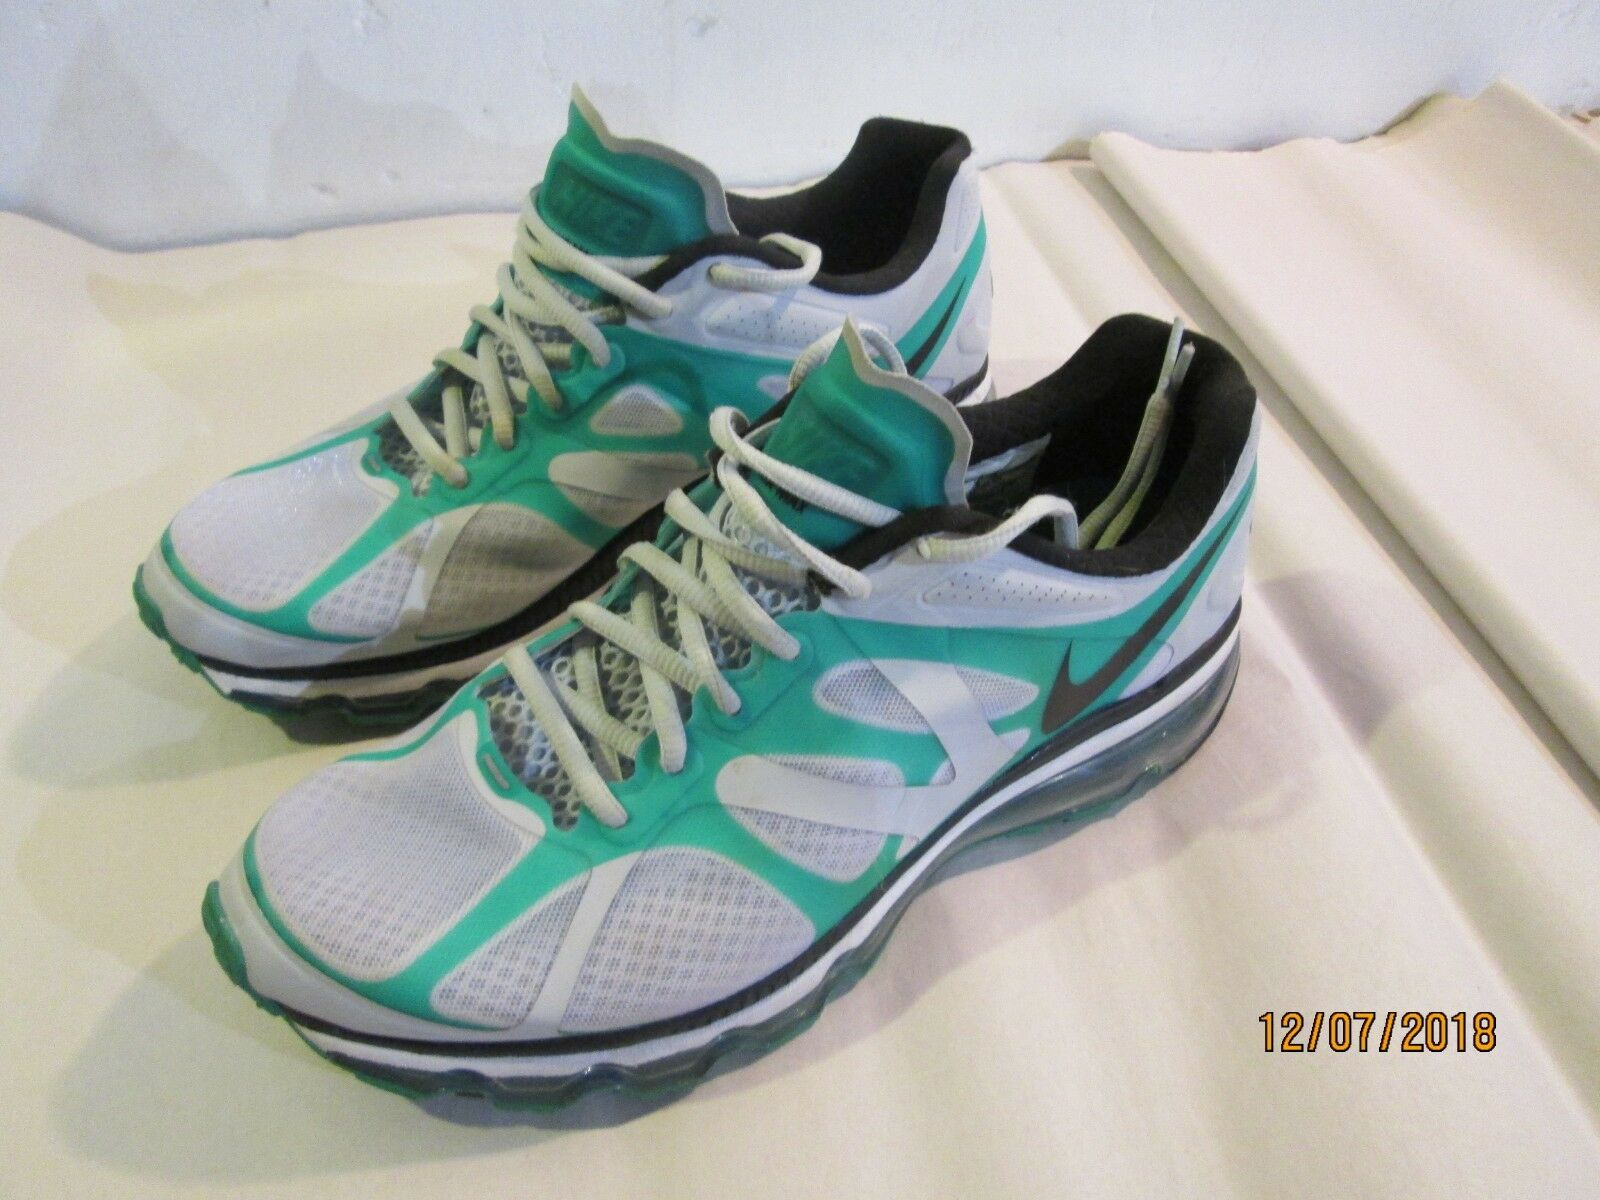 NIKE Air Max + green 487982-003 Size 9 Great Condition